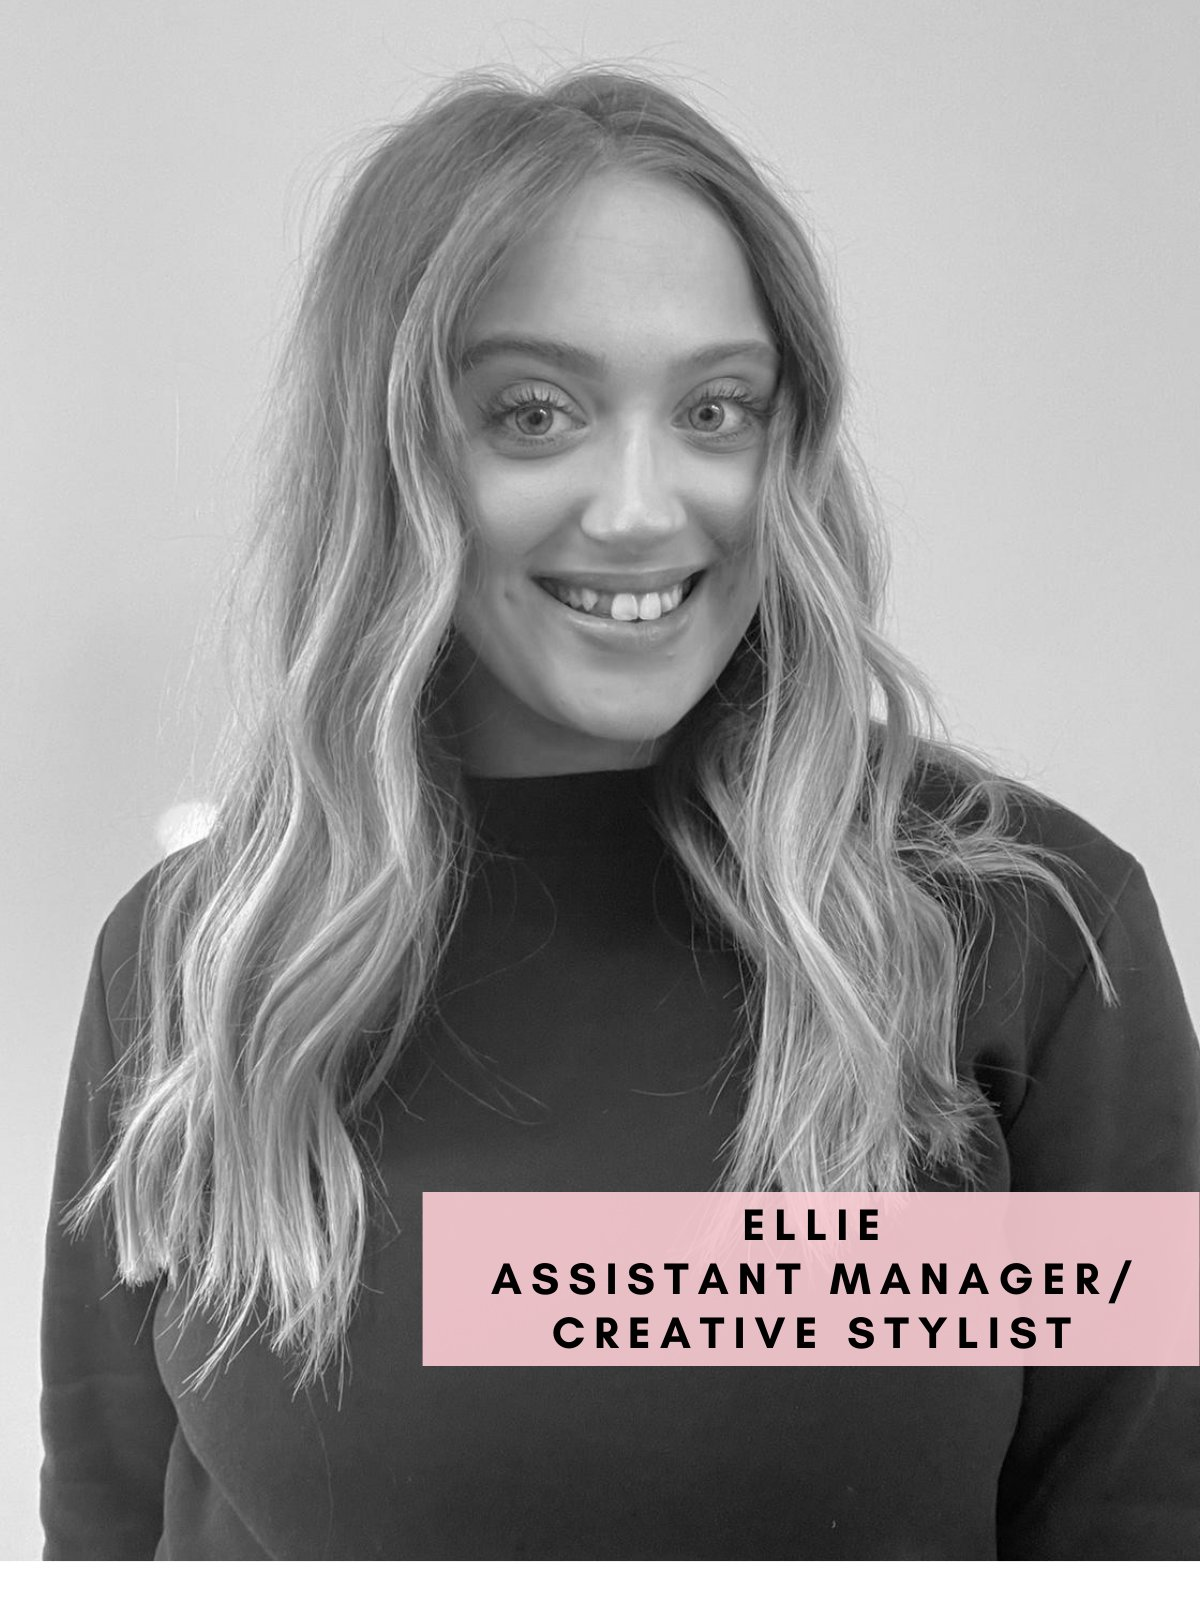 Ellie- Assistant Manager/Creative Stylist